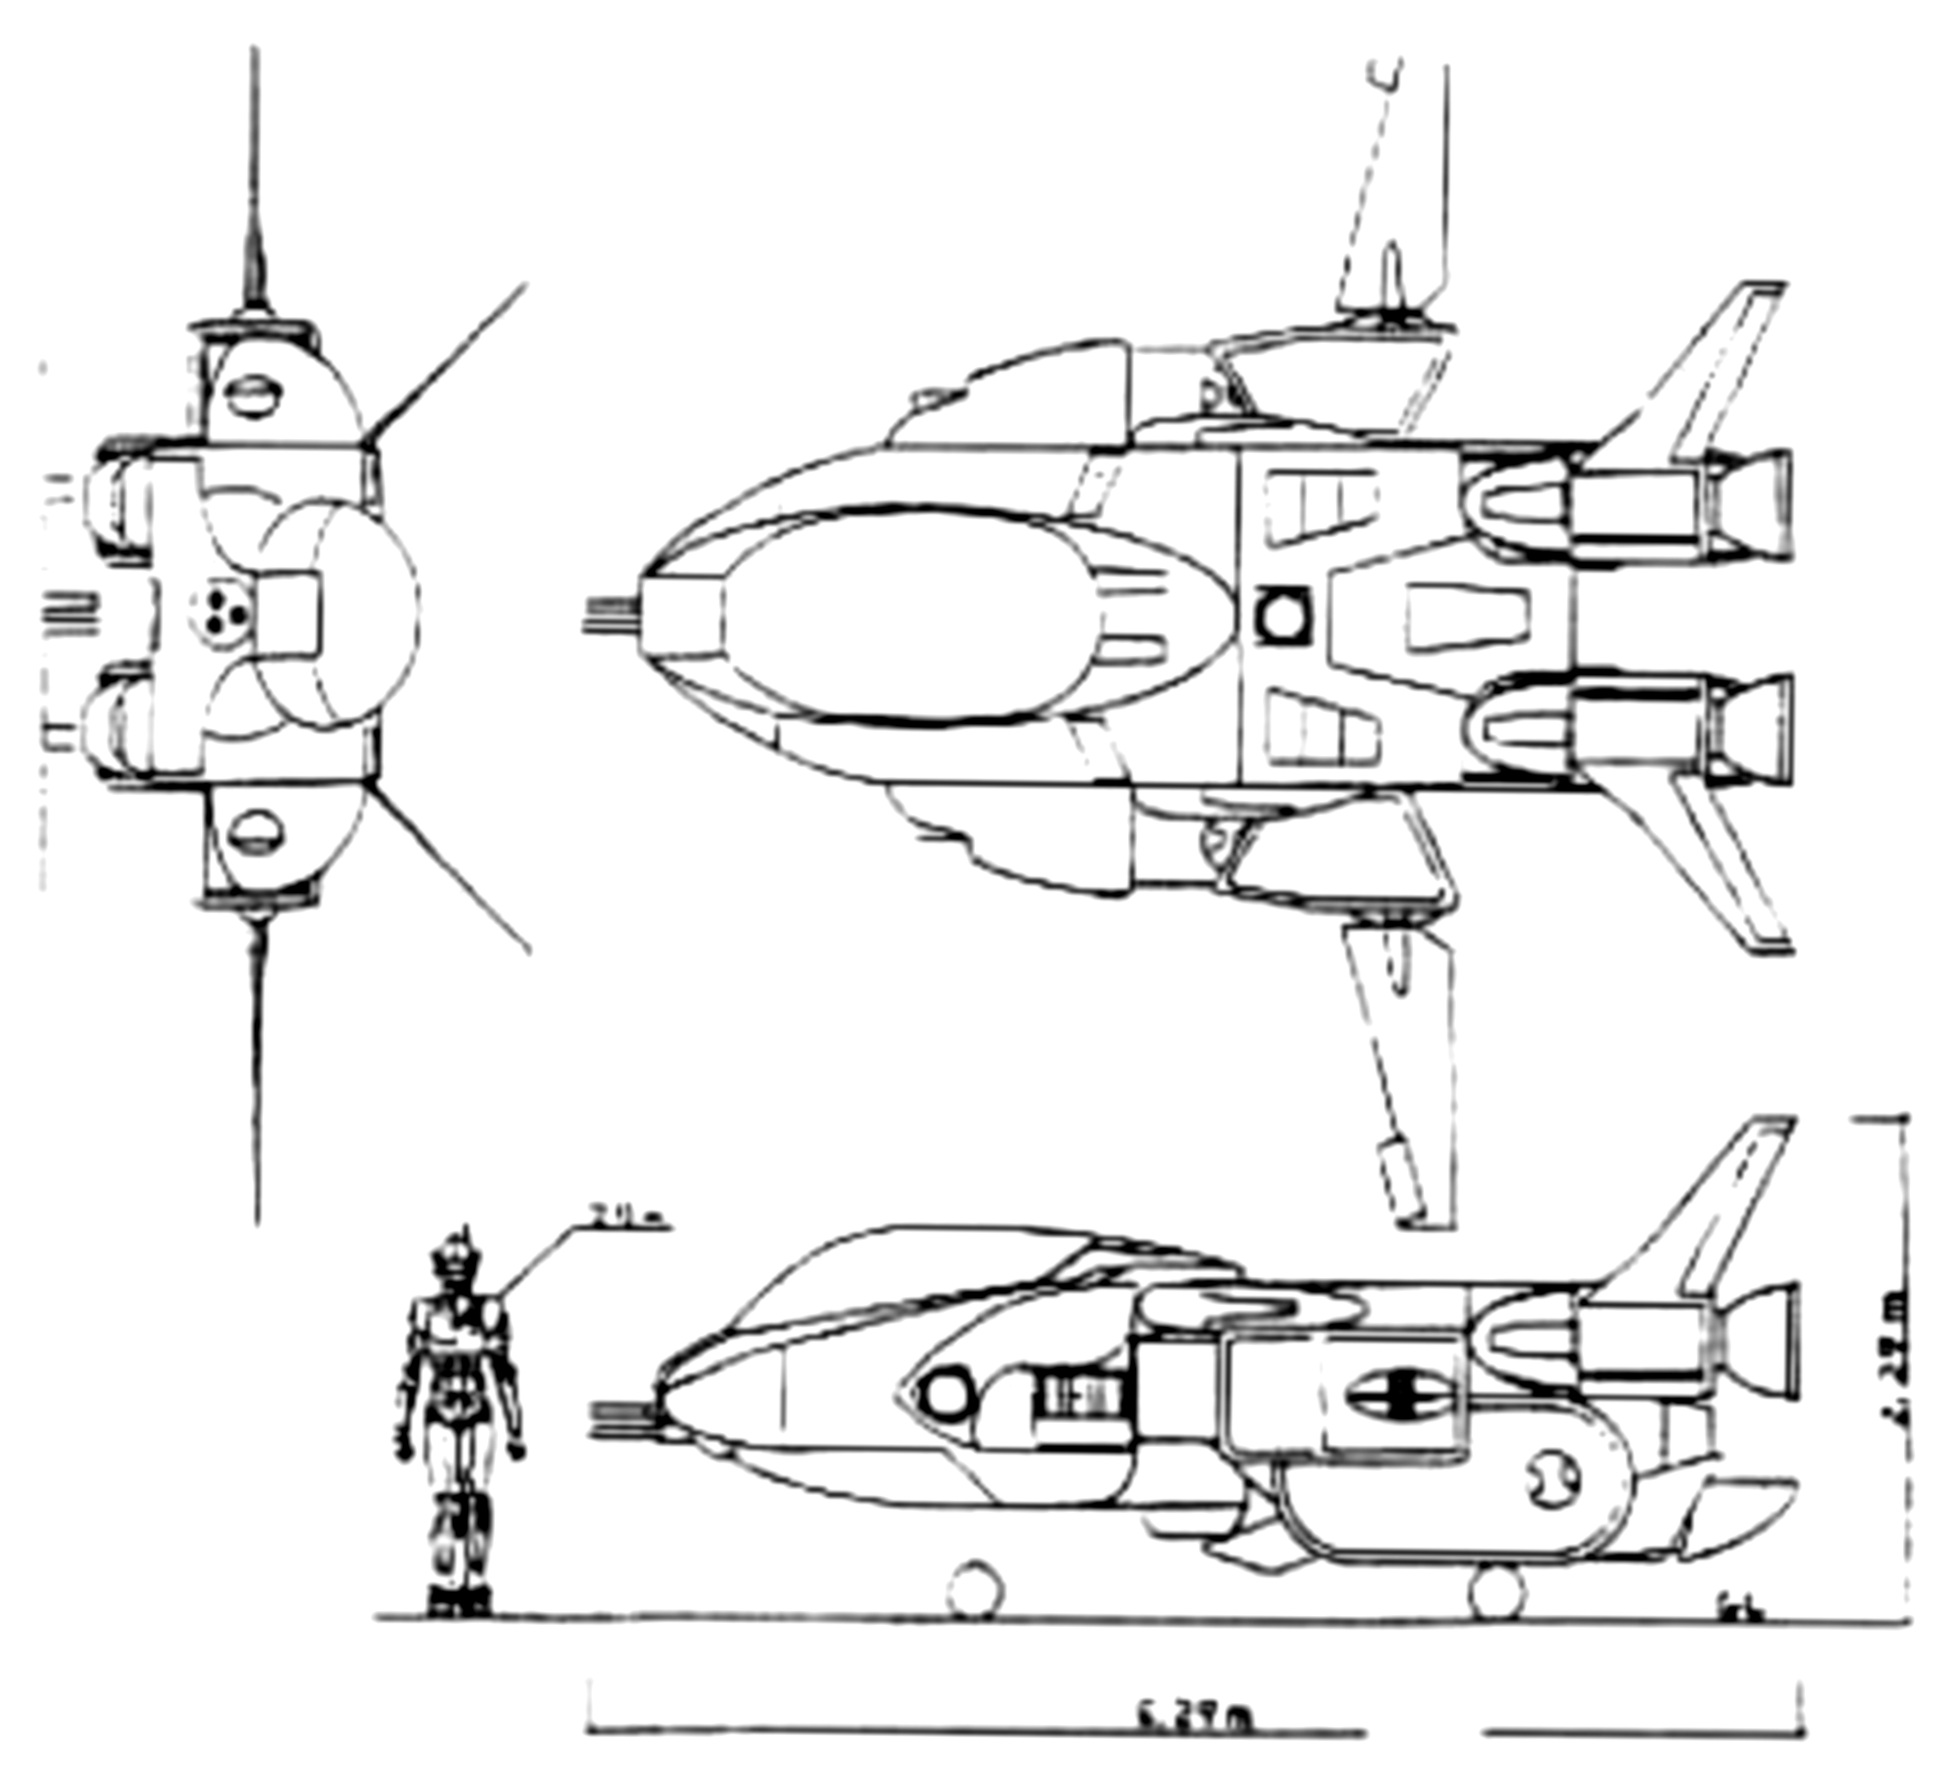 February 2017 mecha journal page 2 northrop grumman vfa 8c logan veritech attack fighter transformation sequence malvernweather Image collections